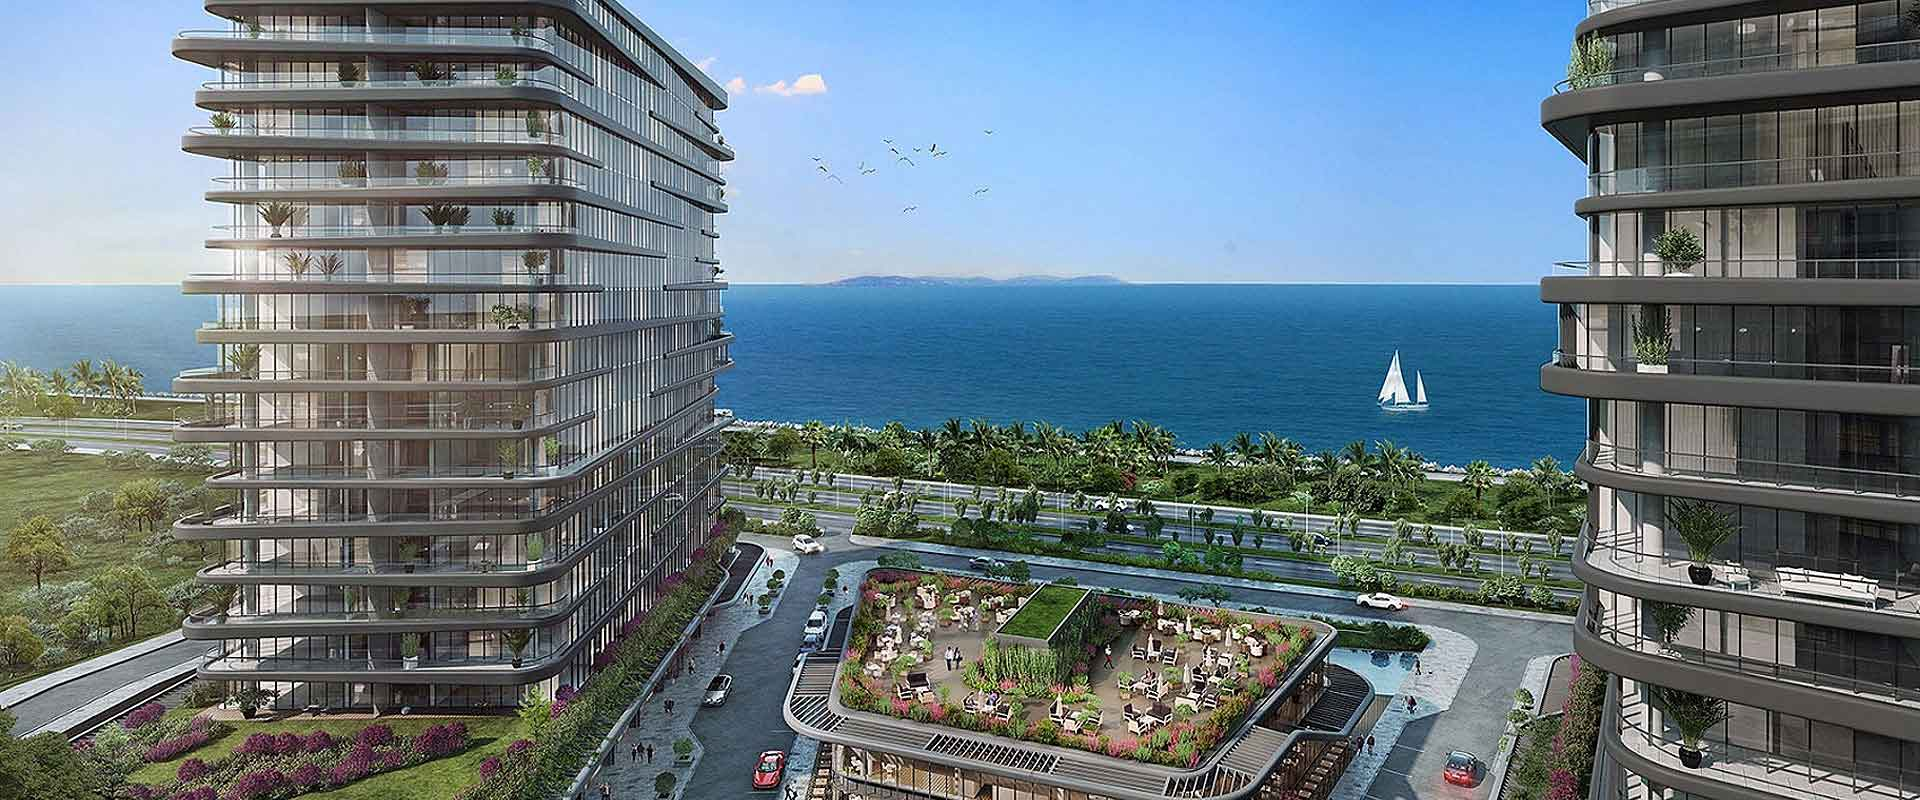 Luxury Apartments in Zeytinburnu Istanbul